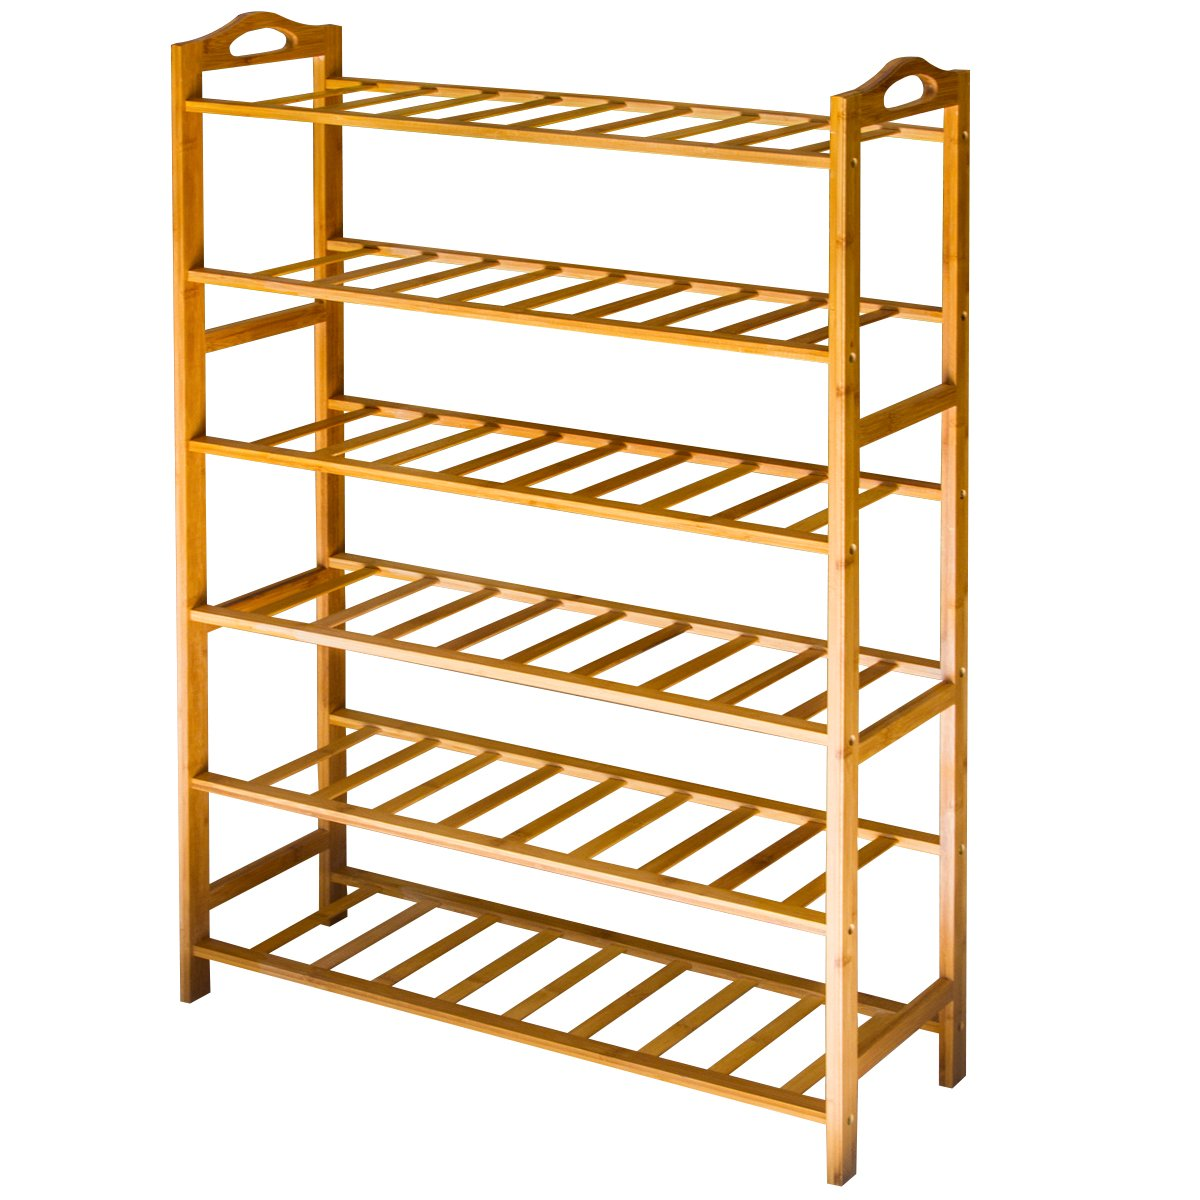 ANKO Bamboo Shoe Rack, 100% Natural Bamboo Thickened 6-Tier Mesh Utility Entryway Shoe Shelf Storage Organizer Suitable for Entryway, Closet, Living Room, Bedroom. (1 PACK)